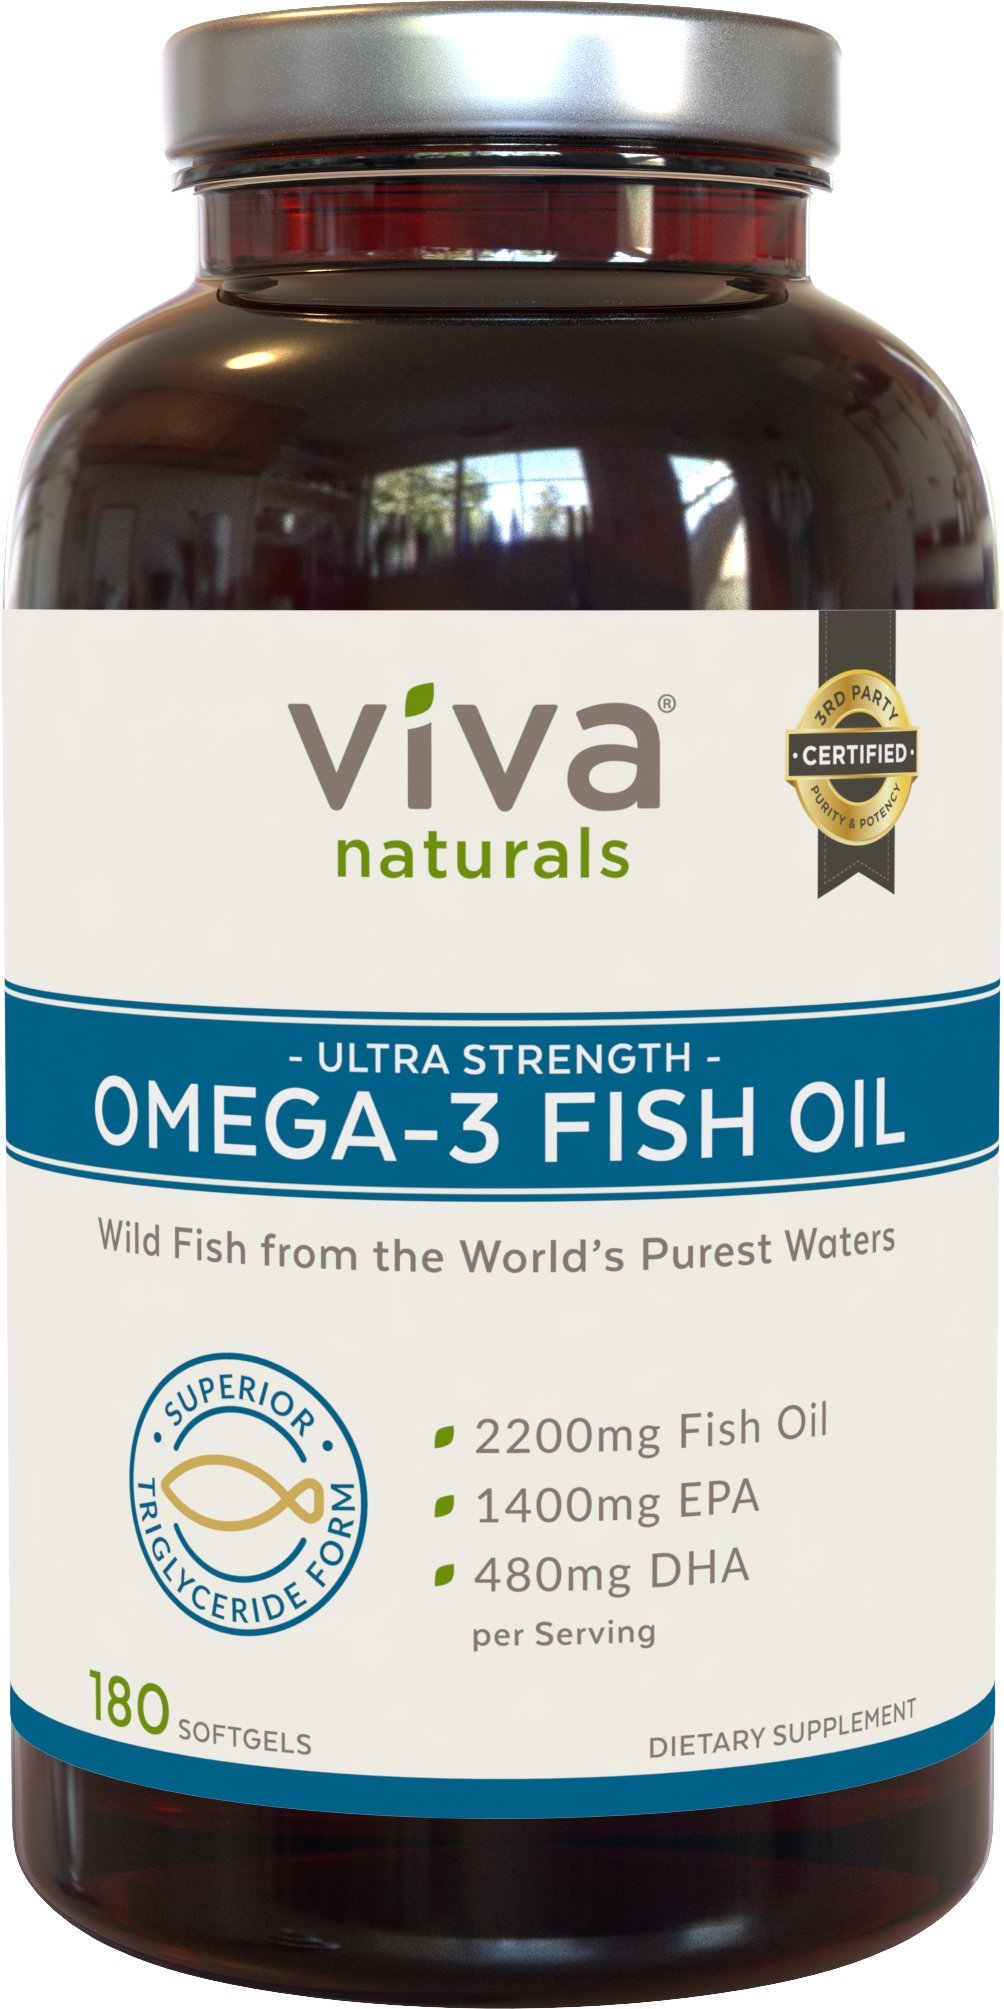 galleon viva naturals omega 3 fish oil supplement 180